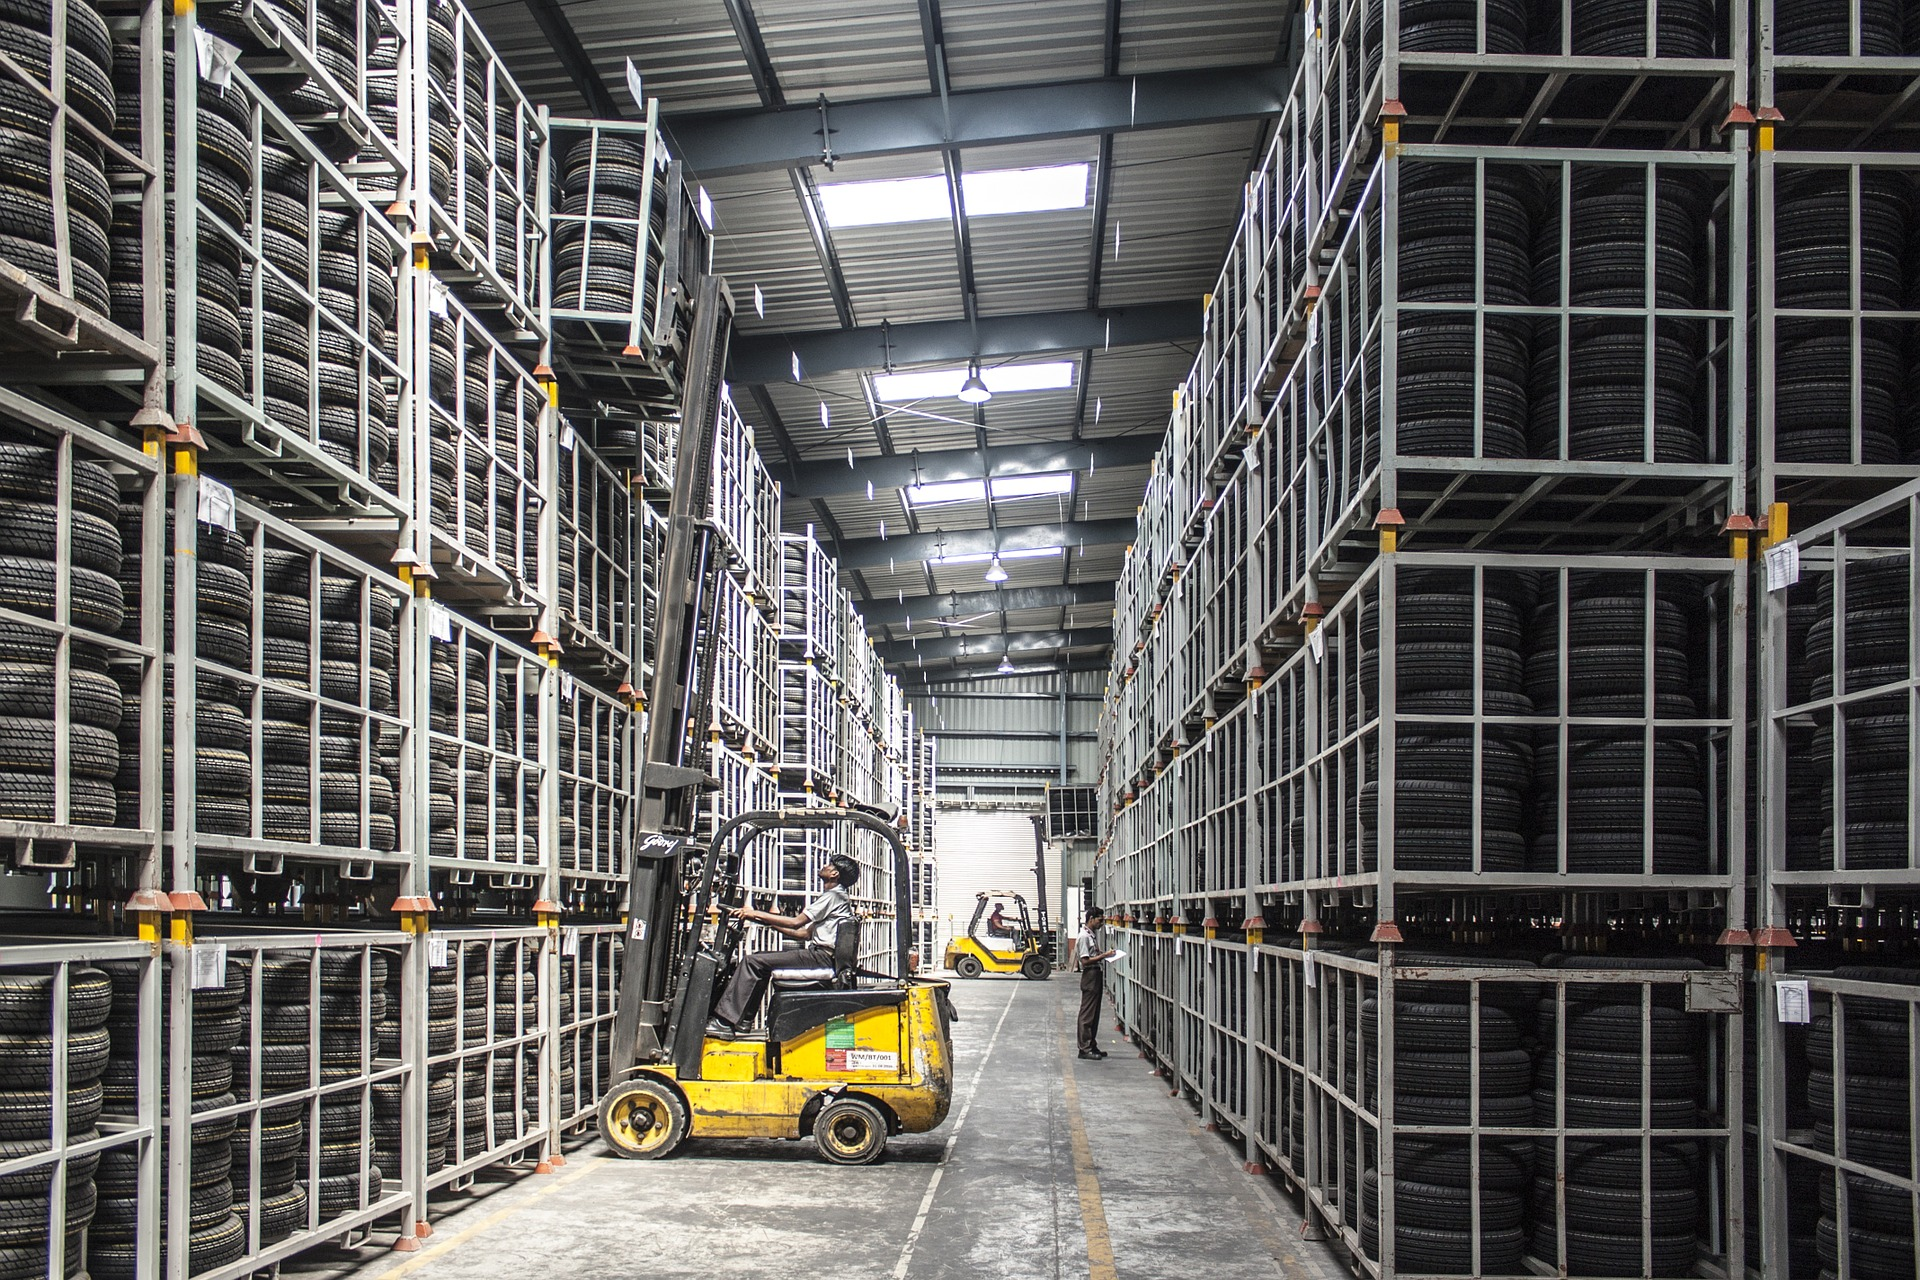 A worker operation a forklift - Inventory system for small business